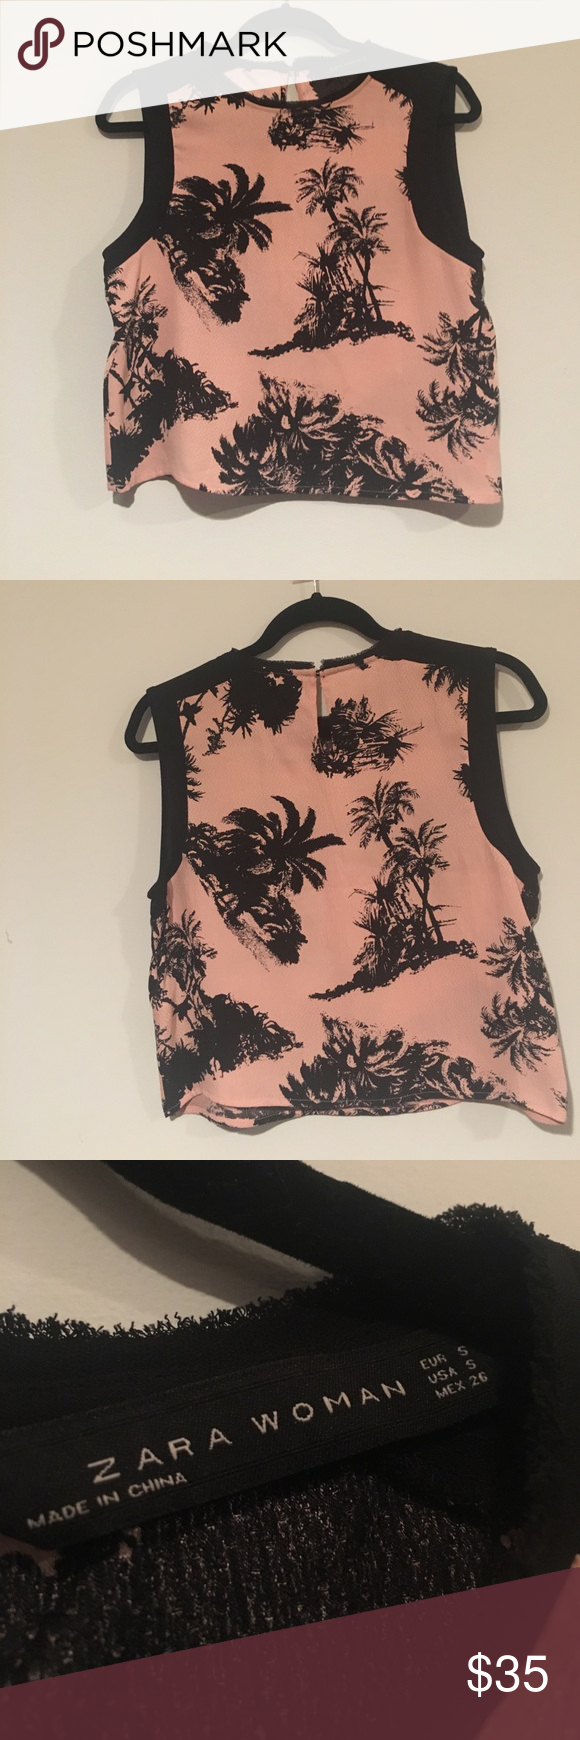 Zara Blouse Zara Pink and Black Silk Blouse With Palm Trees   NWOT no flaws / signs of wear  Size Small  Tags zara forever 21 hm nasty gal massimo dutti pull and bear Uniqlo Zara Tops Blouses